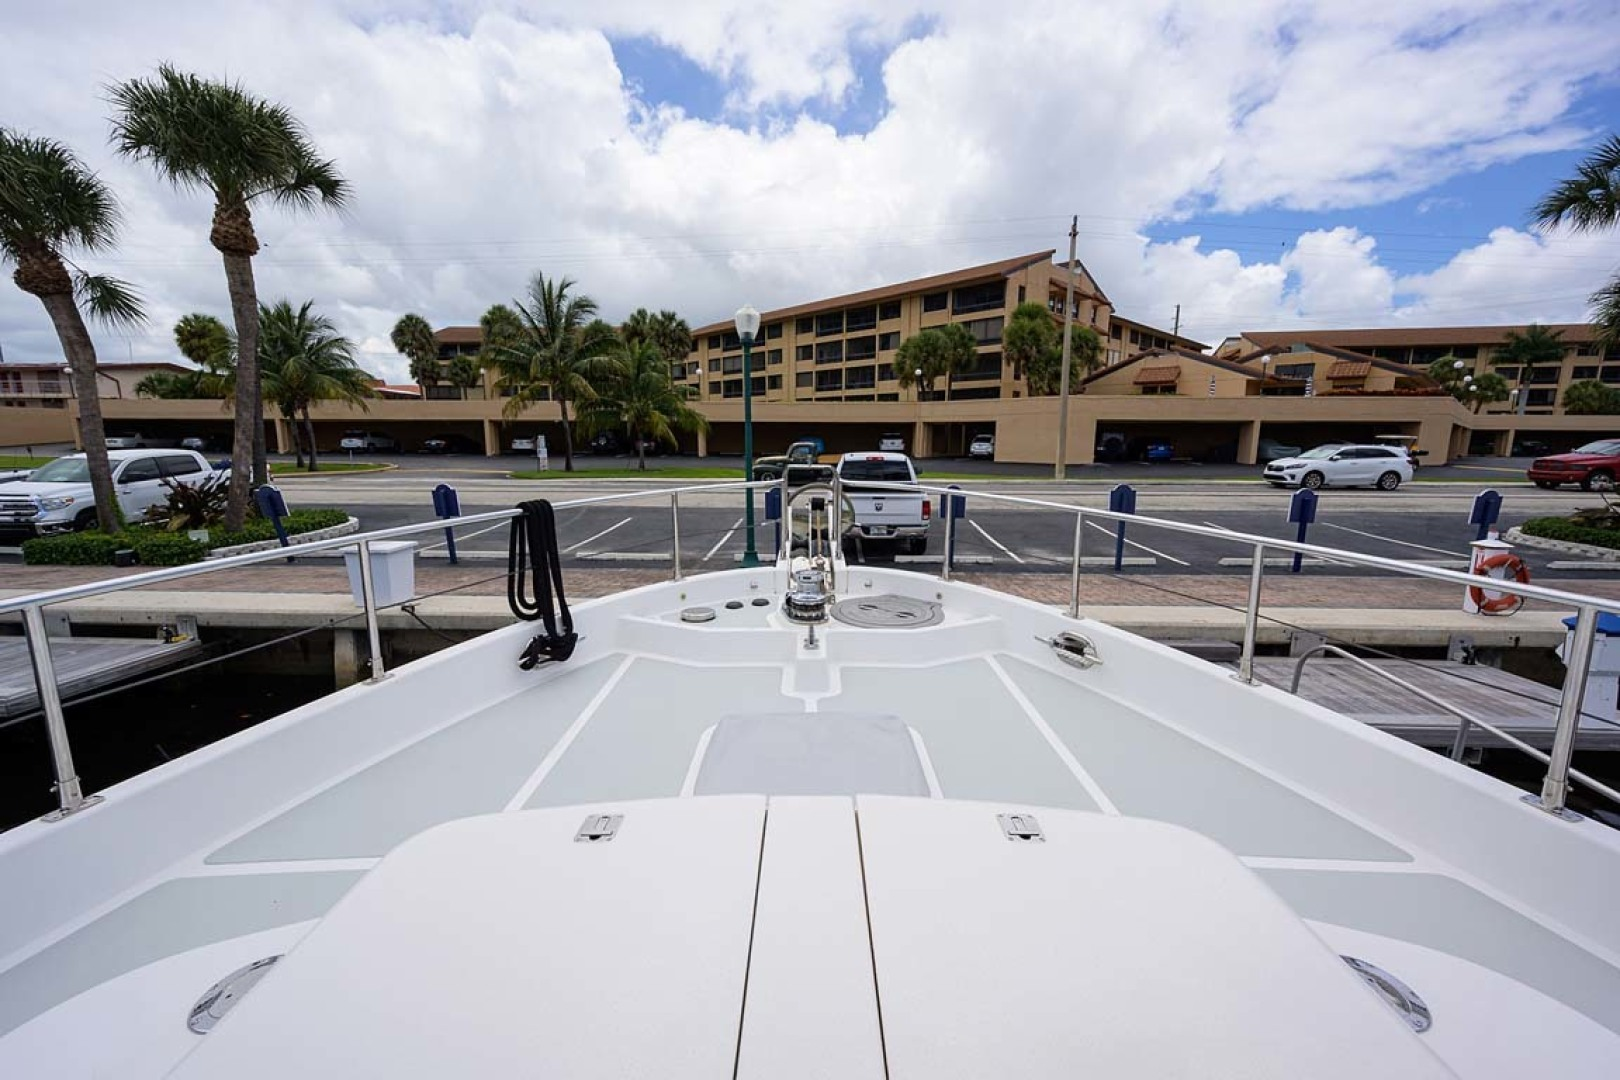 Nordhavn-47 2005-Fusion North Palm Beach-Florida-United States-Foredeck-1424021 | Thumbnail